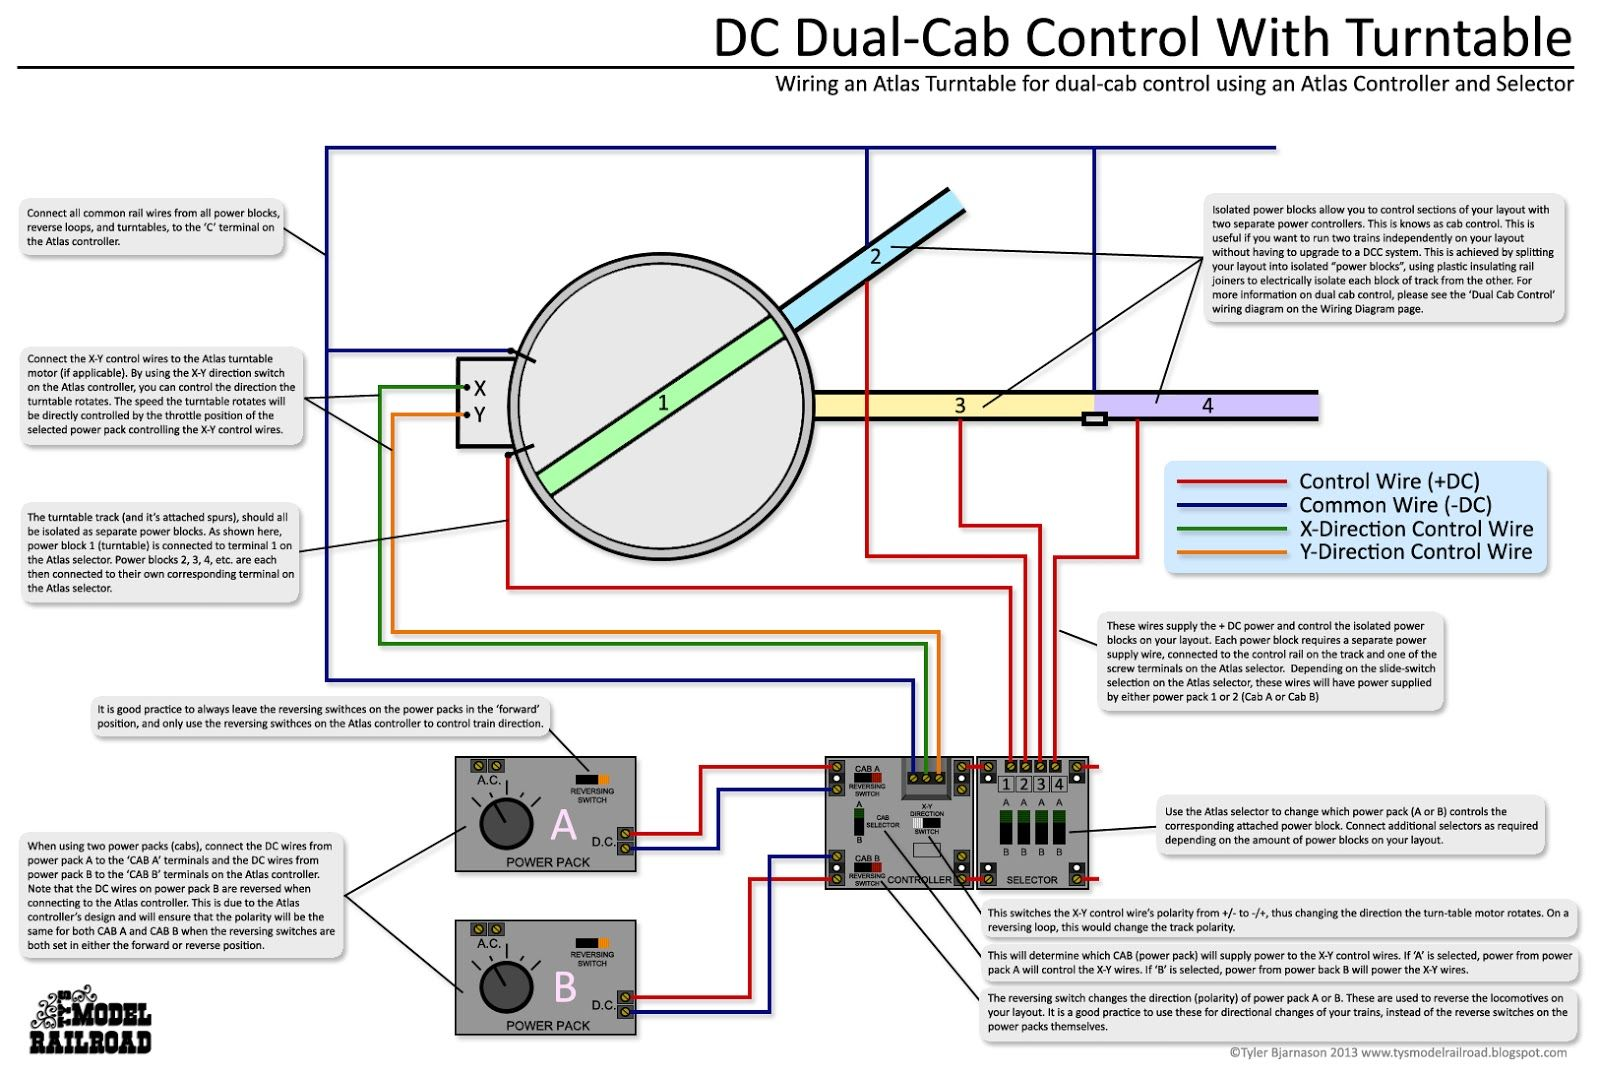 How To Use Dual Cab Control To Power And Operate A